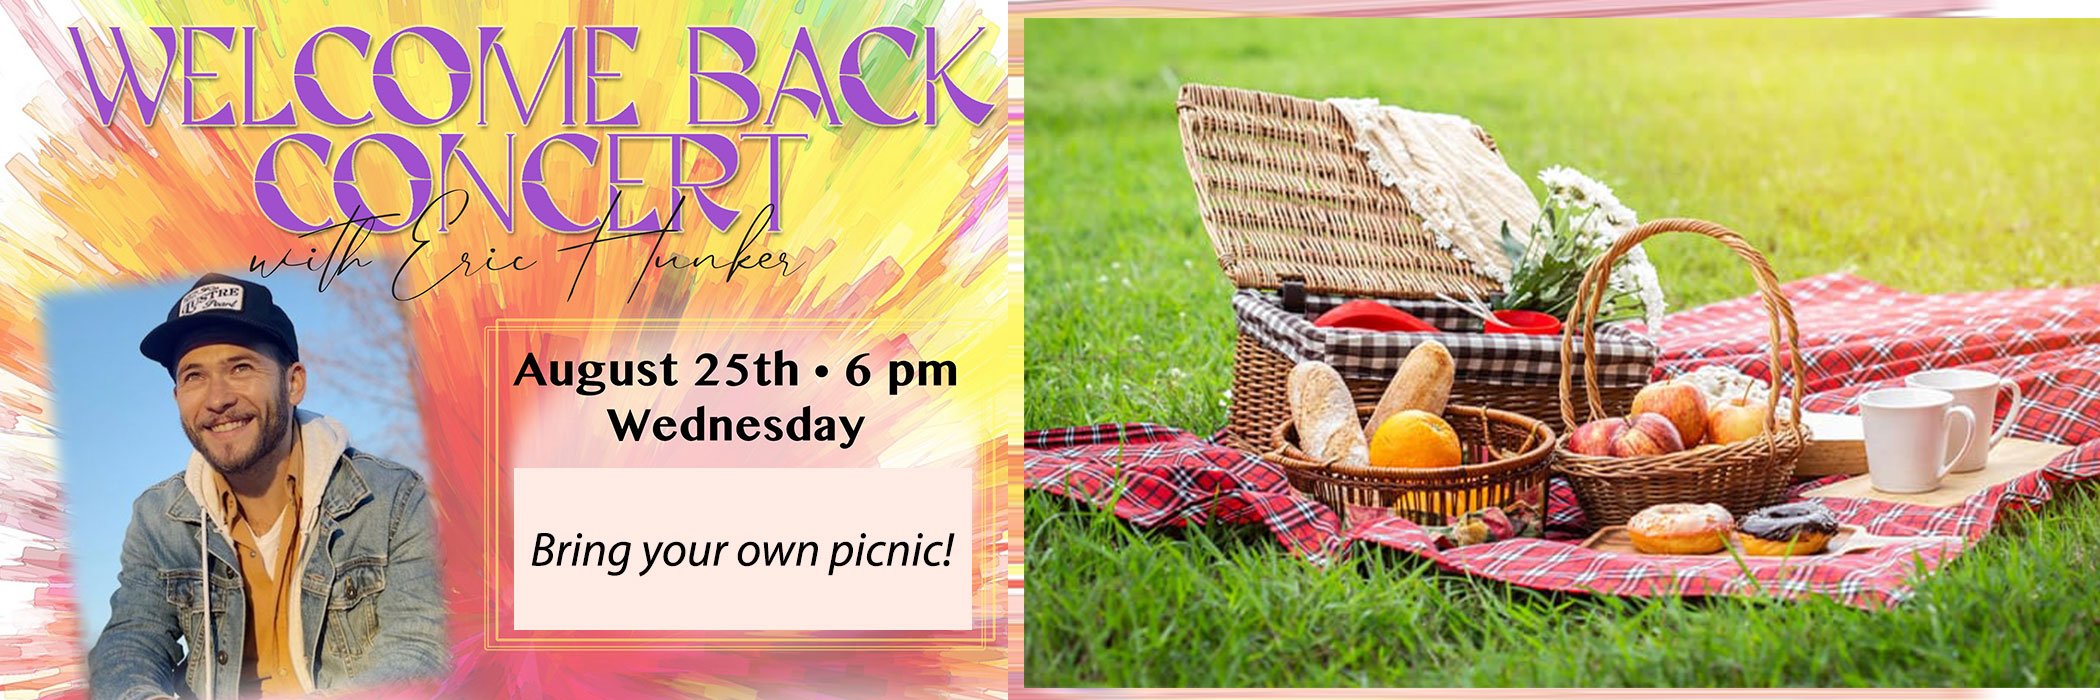 """<a href=""""https://www.kilv.org/event/welcome-back-picnic-and-concert.html""""                                     target="""""""">                                                                 <span class=""""slider_title"""">                                     Welcome Back Concert and Picnic!                                </span>                                                                 </a>                                                                                                                                                                                       <span class=""""slider_description"""">Join us 8/25 for a Welcome Back Picnic and Concert with Eric Hunker.</span>                                                                                     <a href=""""https://www.kilv.org/event/welcome-back-picnic-and-concert.html"""" class=""""slider_link""""                             target="""""""">                             Click to Register                            </a>"""